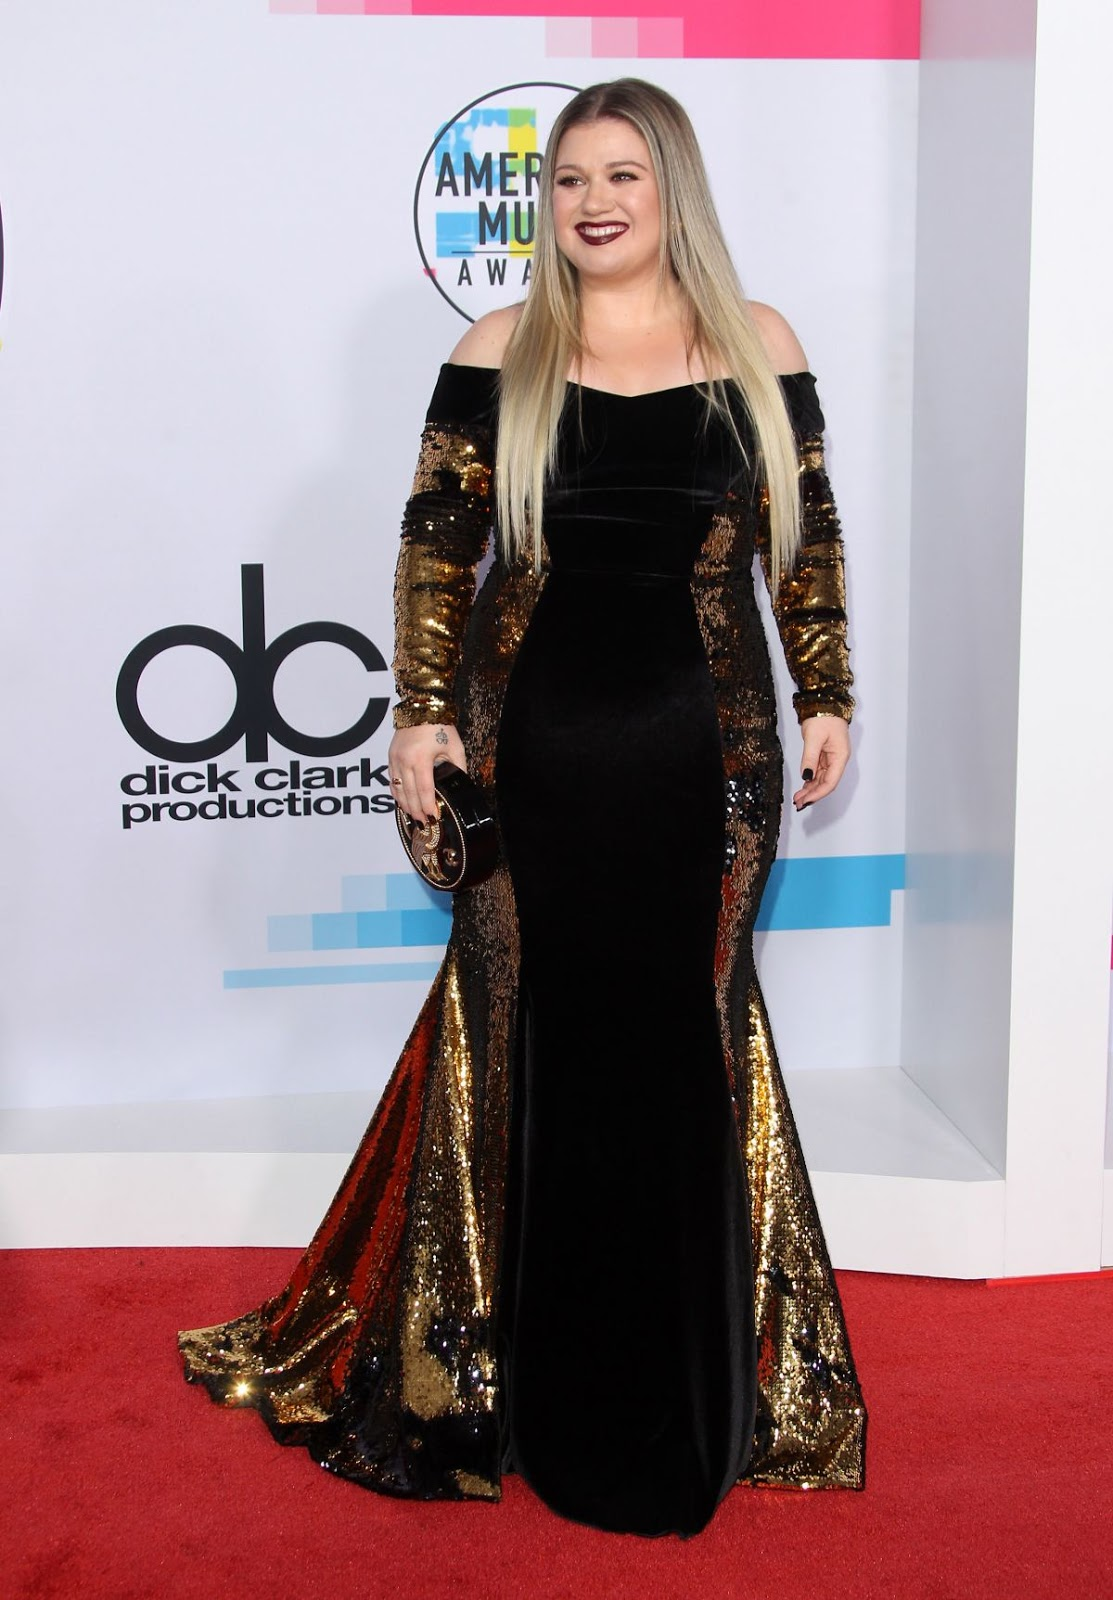 Photos of Kelly Clarkson at American Music Awards 2017 at Microsoft Theater in Los Angeles